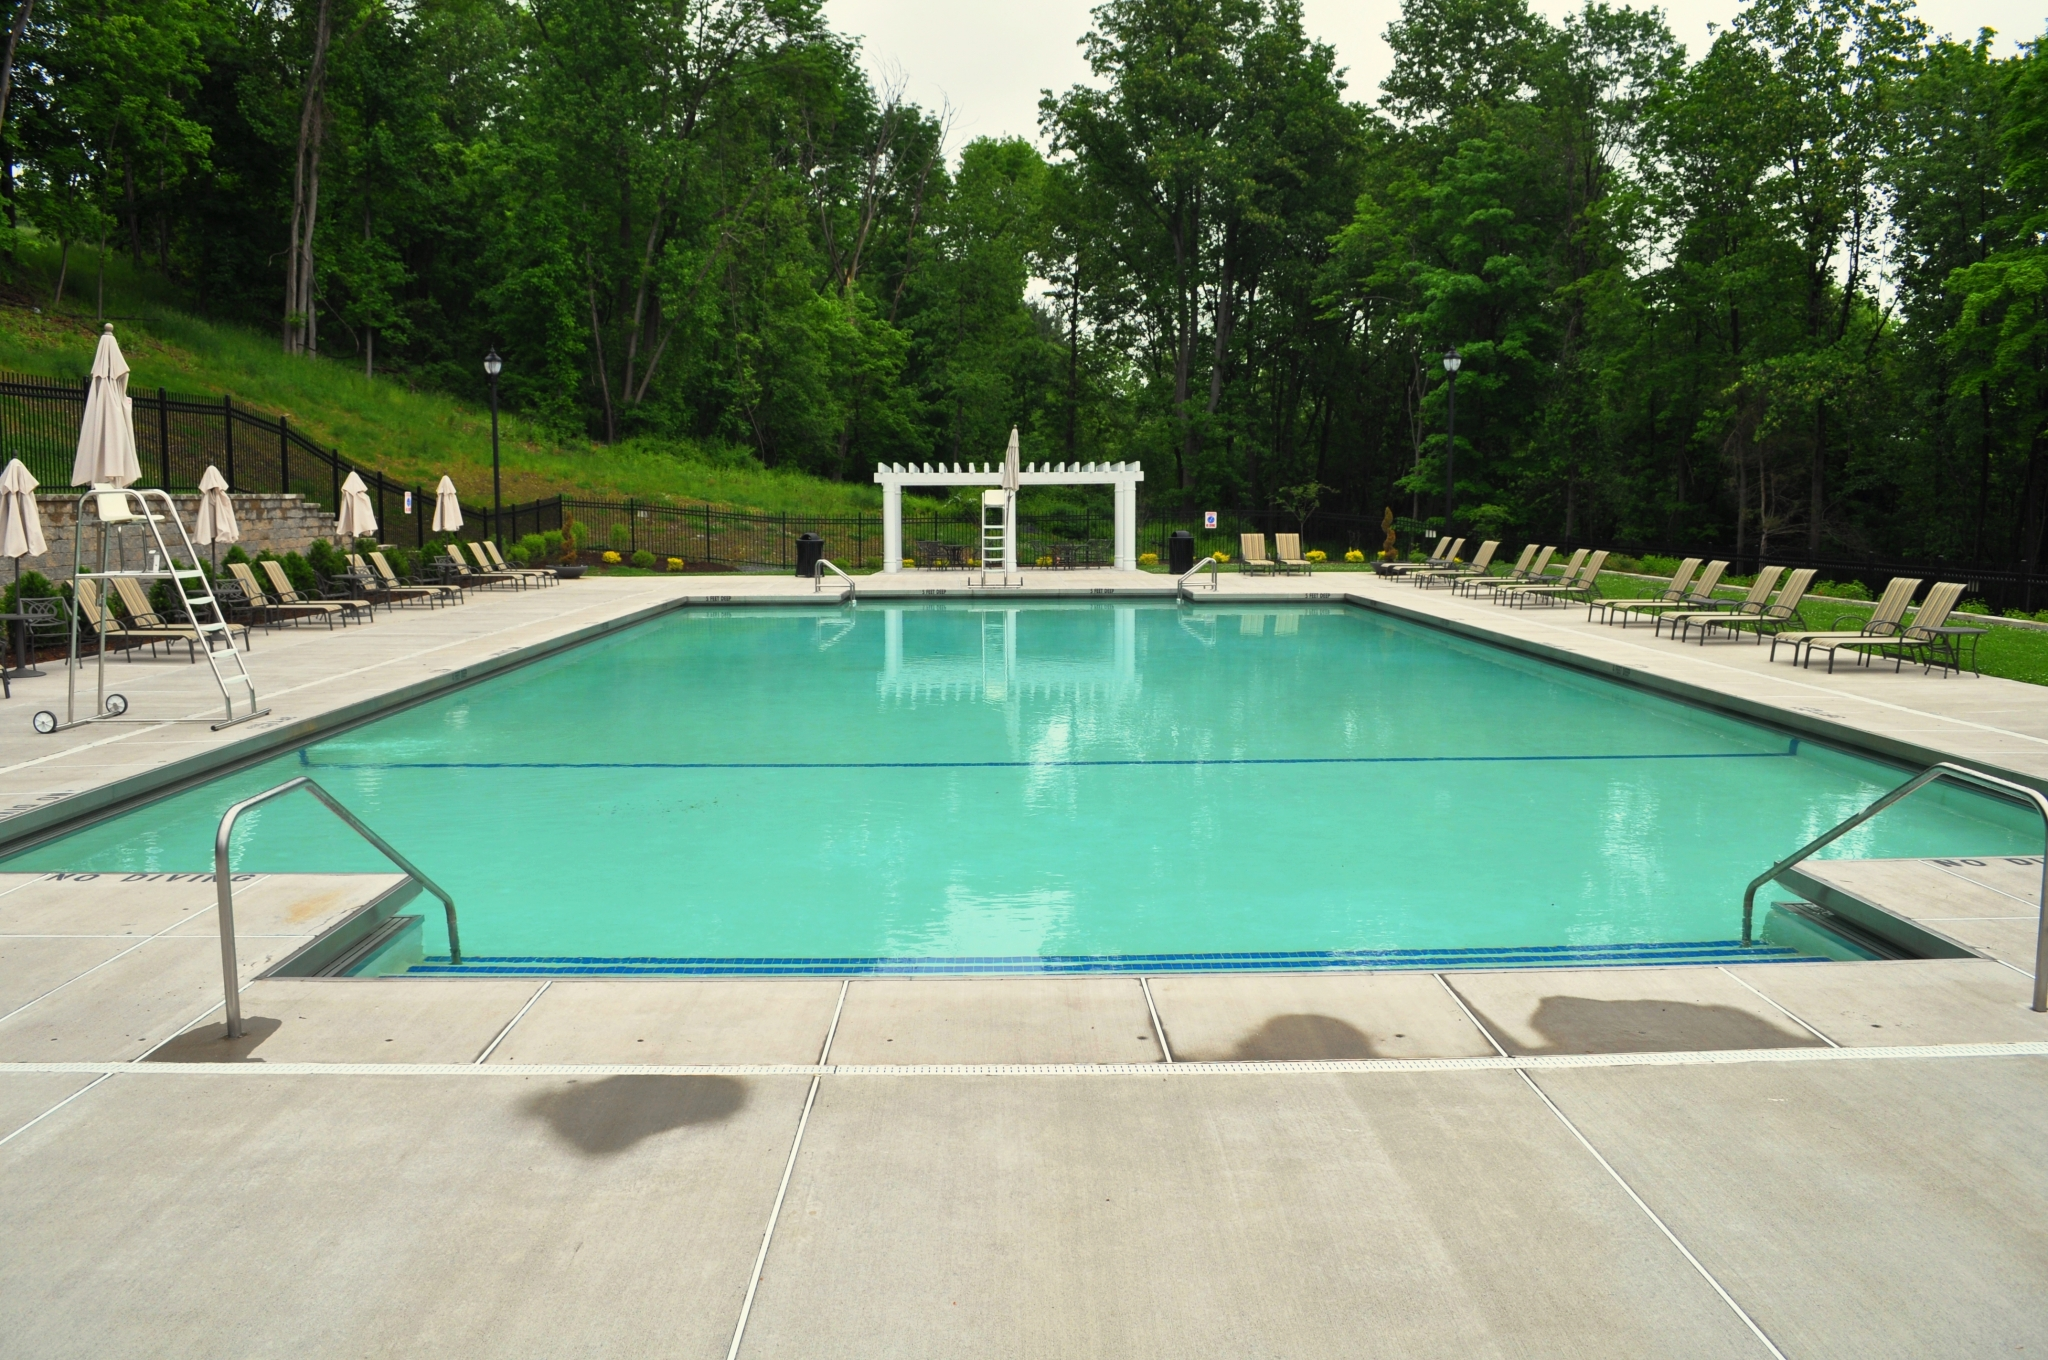 Swimming Pool | Resident Amenity | Community Pool | Conceret Pool